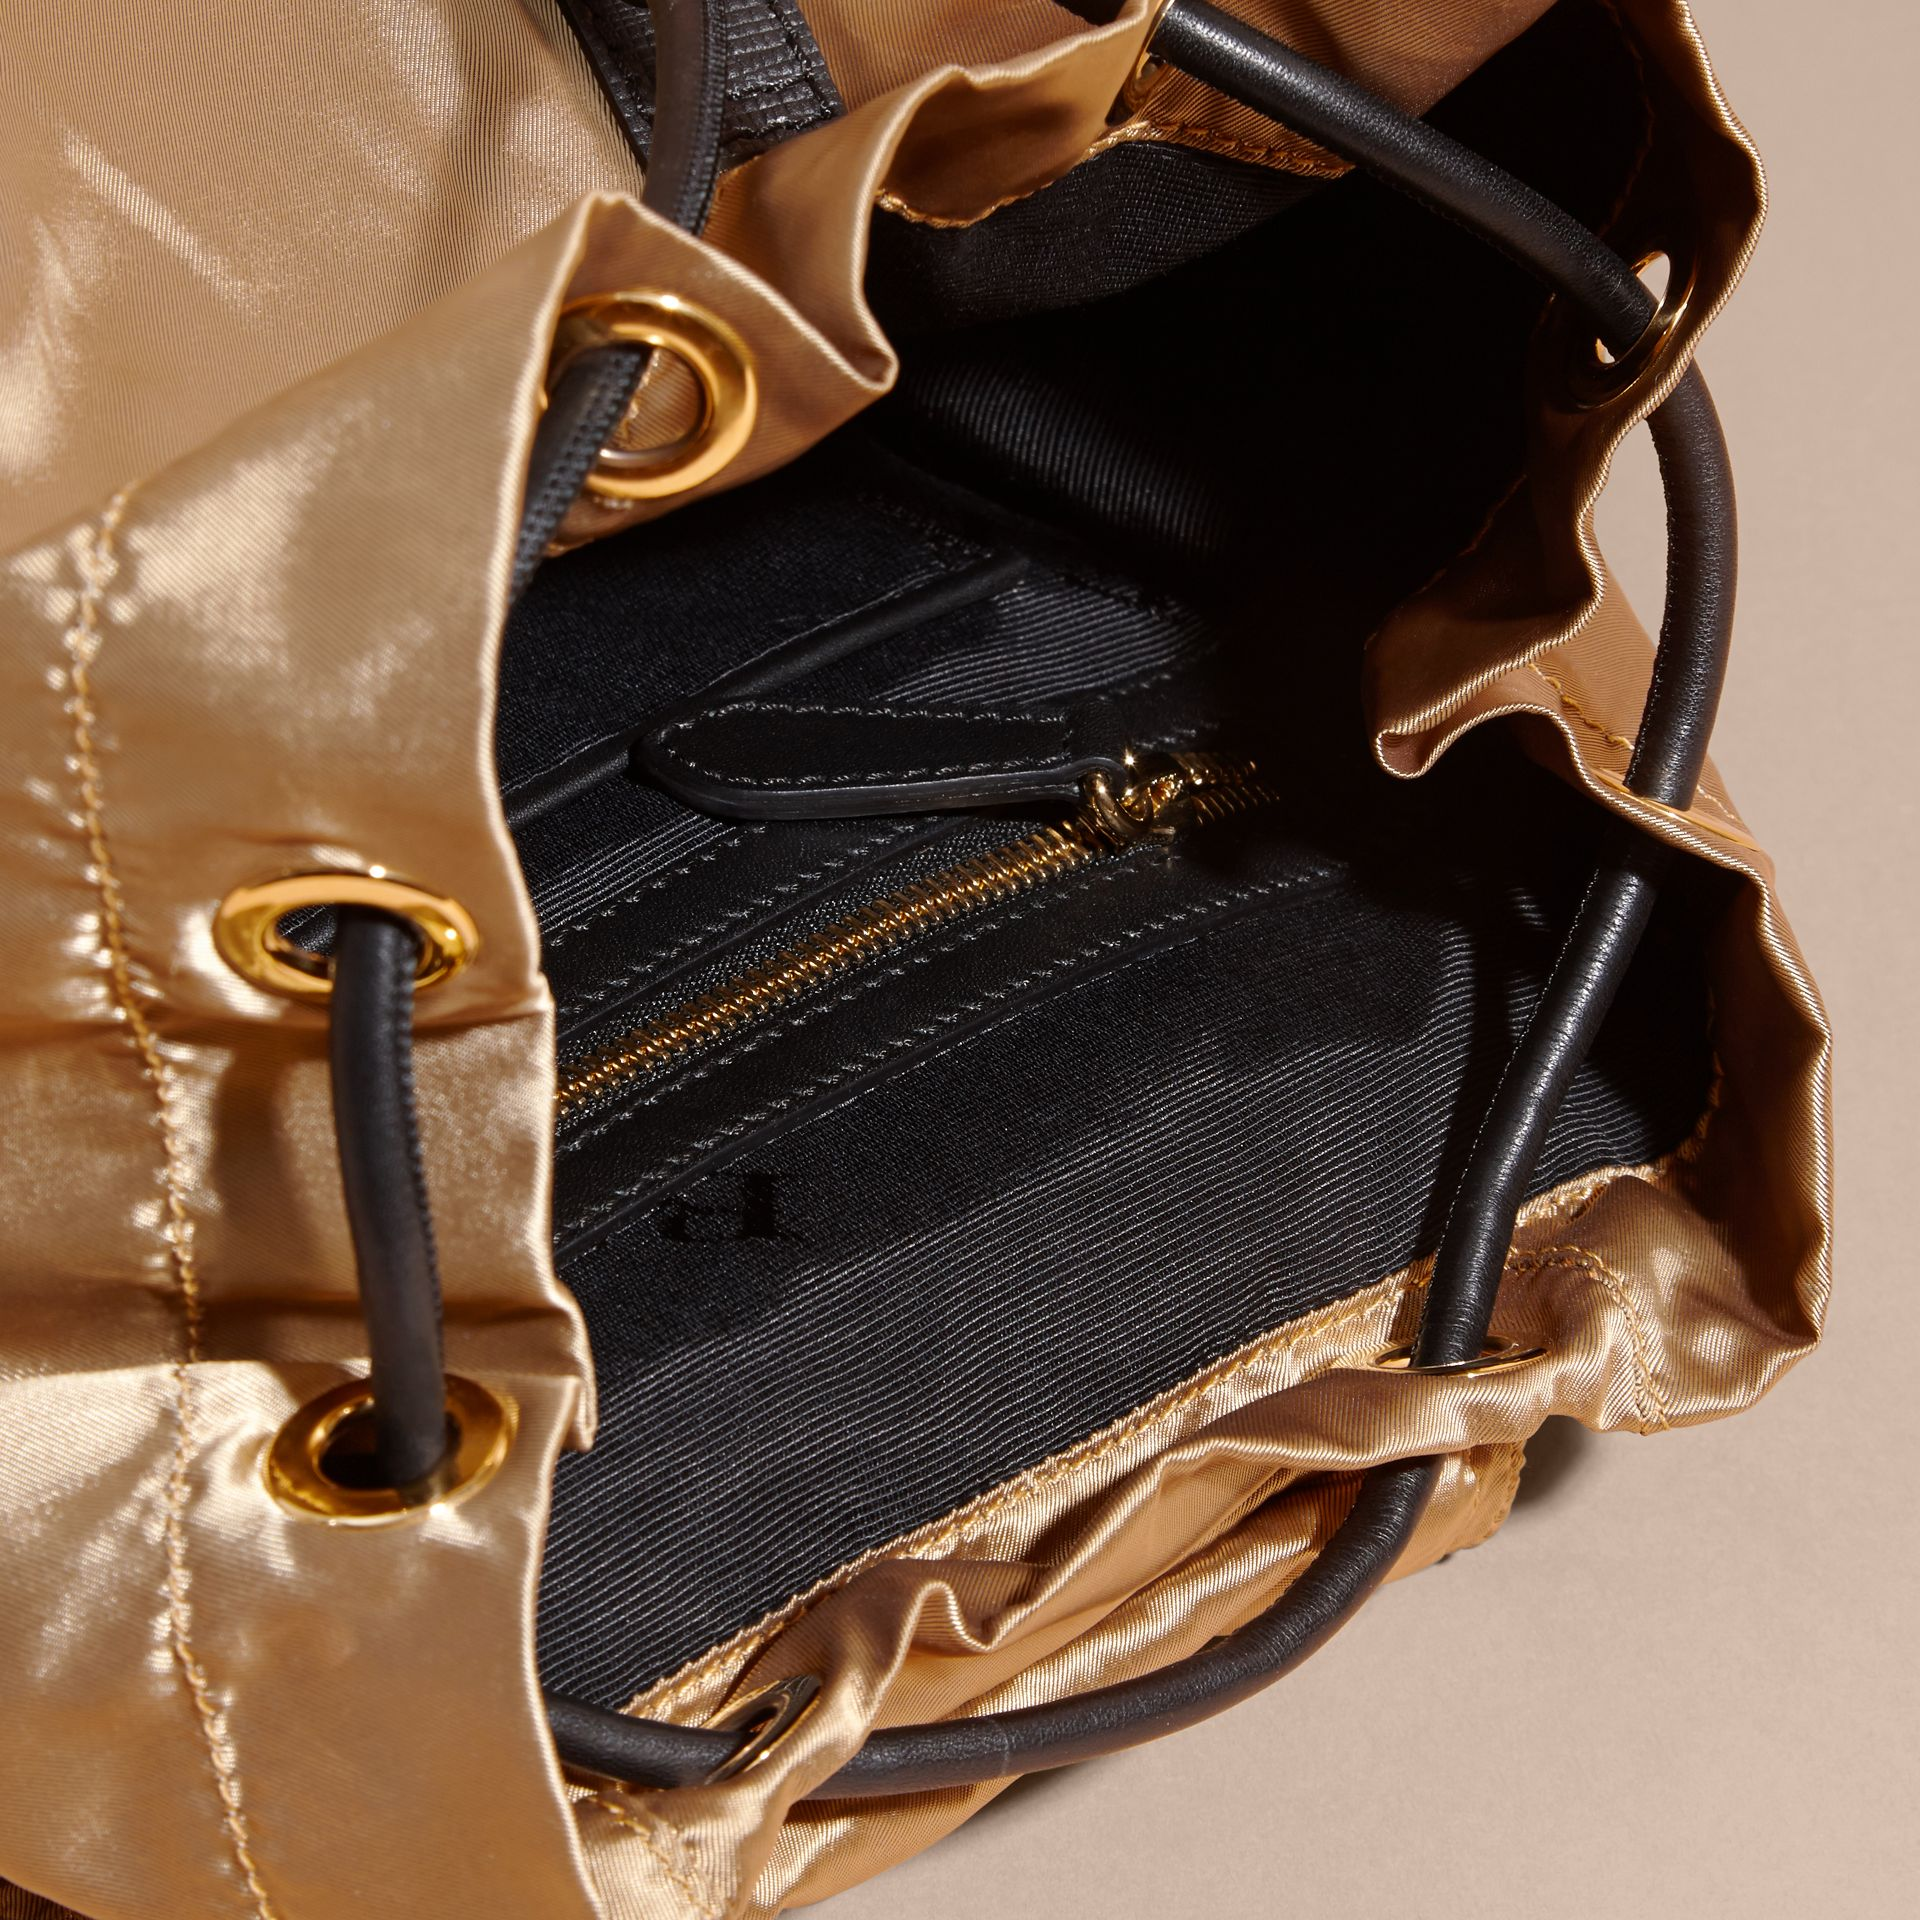 Gold/black The Medium Rucksack in Two-tone Nylon and Leather Gold/black - gallery image 5